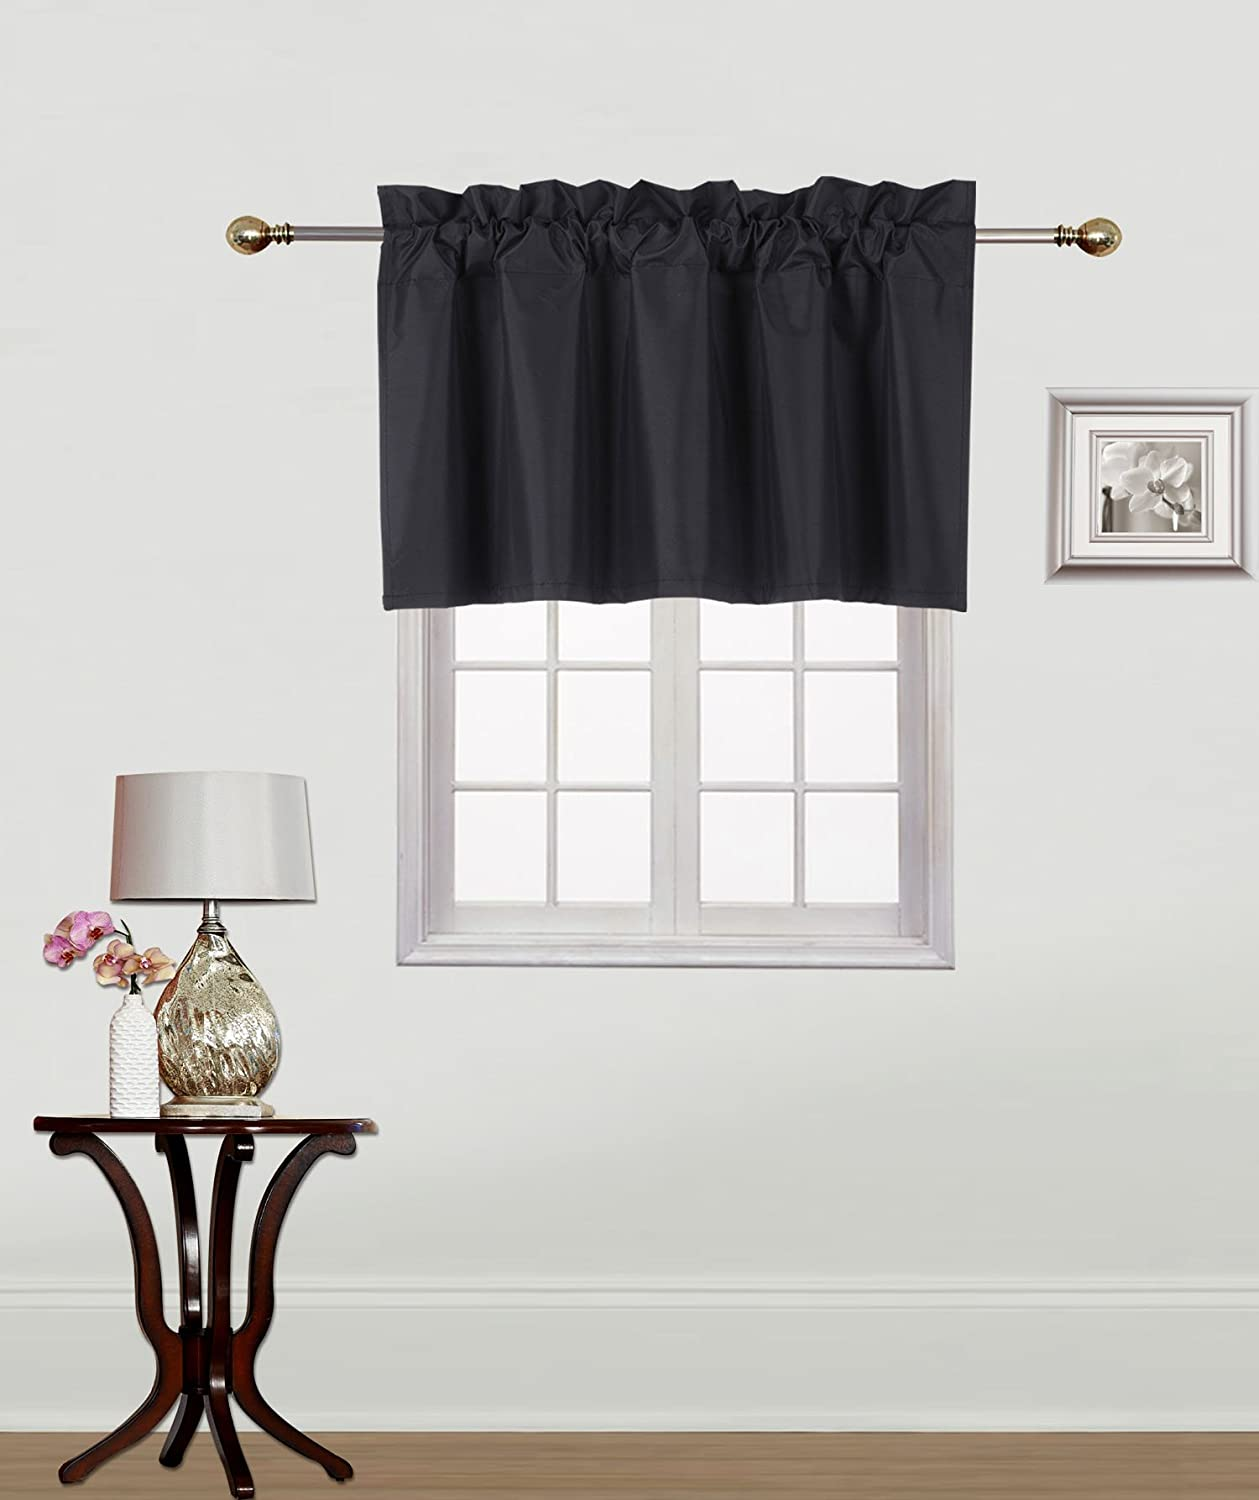 Gorgeous Home Linen (RS9) 1 Small Short Decorative Rod Pocket Foam Lined Blackout Swag Window Curtain Straight Valance for Kitchen, Living Room, Bedroom, Nursery, Basement & Bathroom (Black)